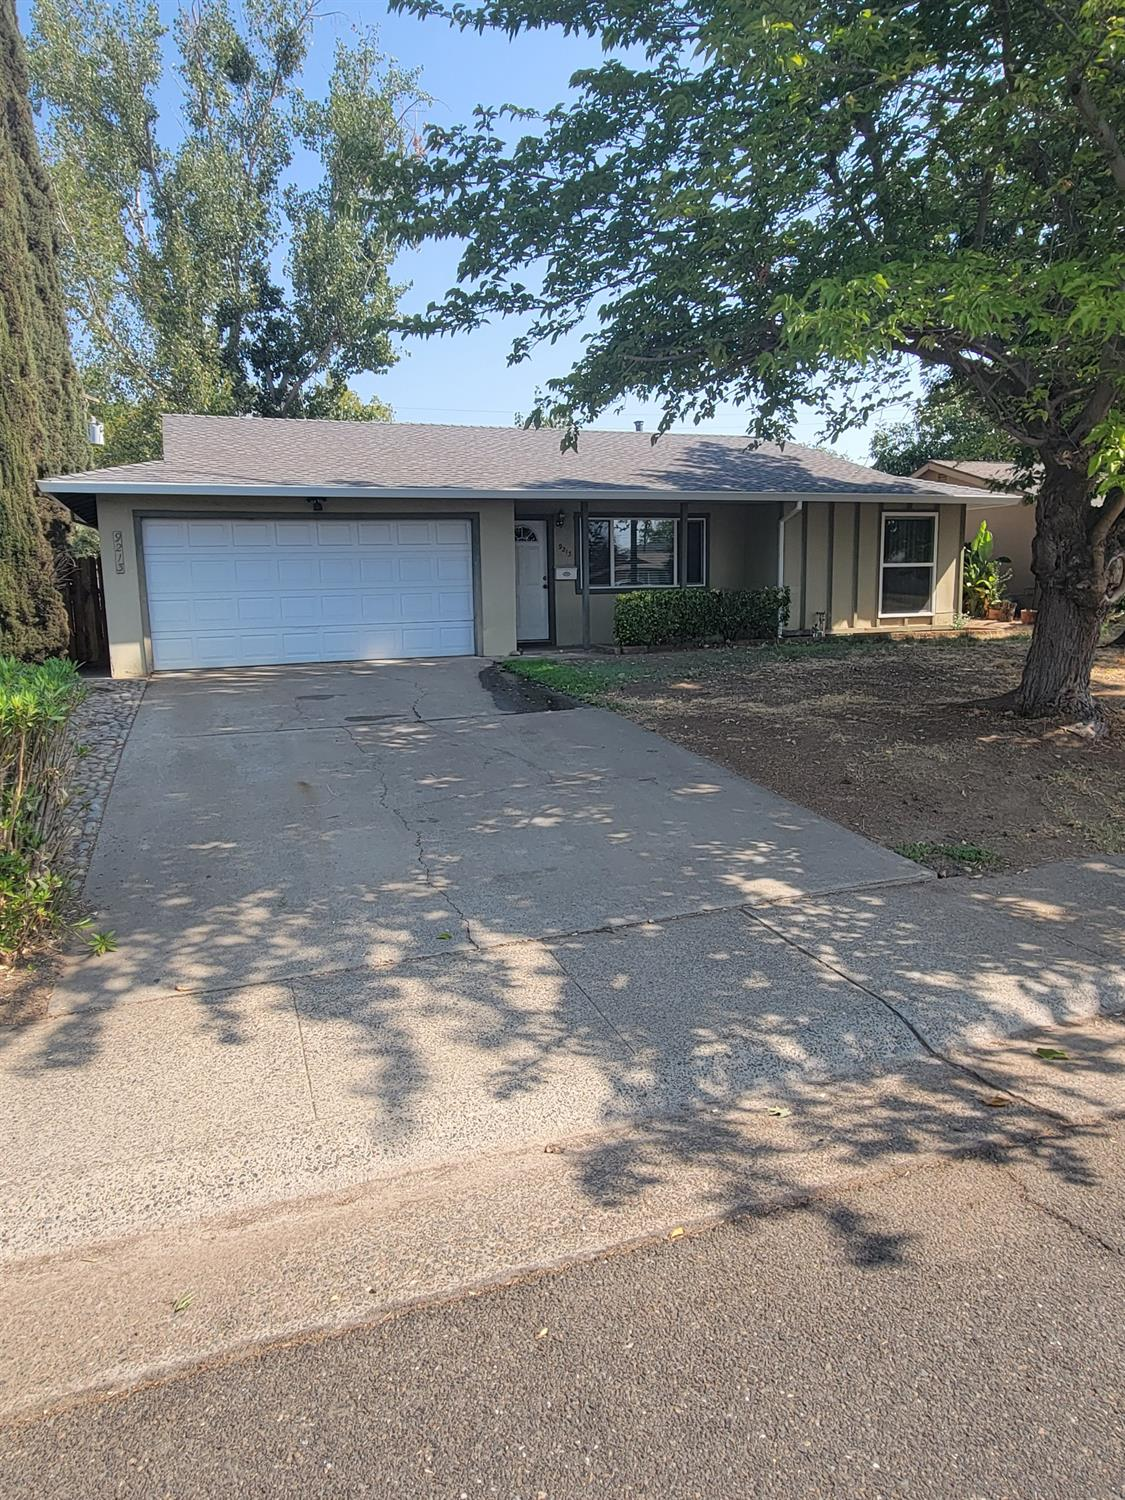 Perfect starter home or potential Flipper. Cute 3 bedroom 2 bath. 1055 sq ft with double attached garage. New roof, new gutters, newer double pane windows, needs some interior paint and some tlc. back yard needs some work, has excllent potential.